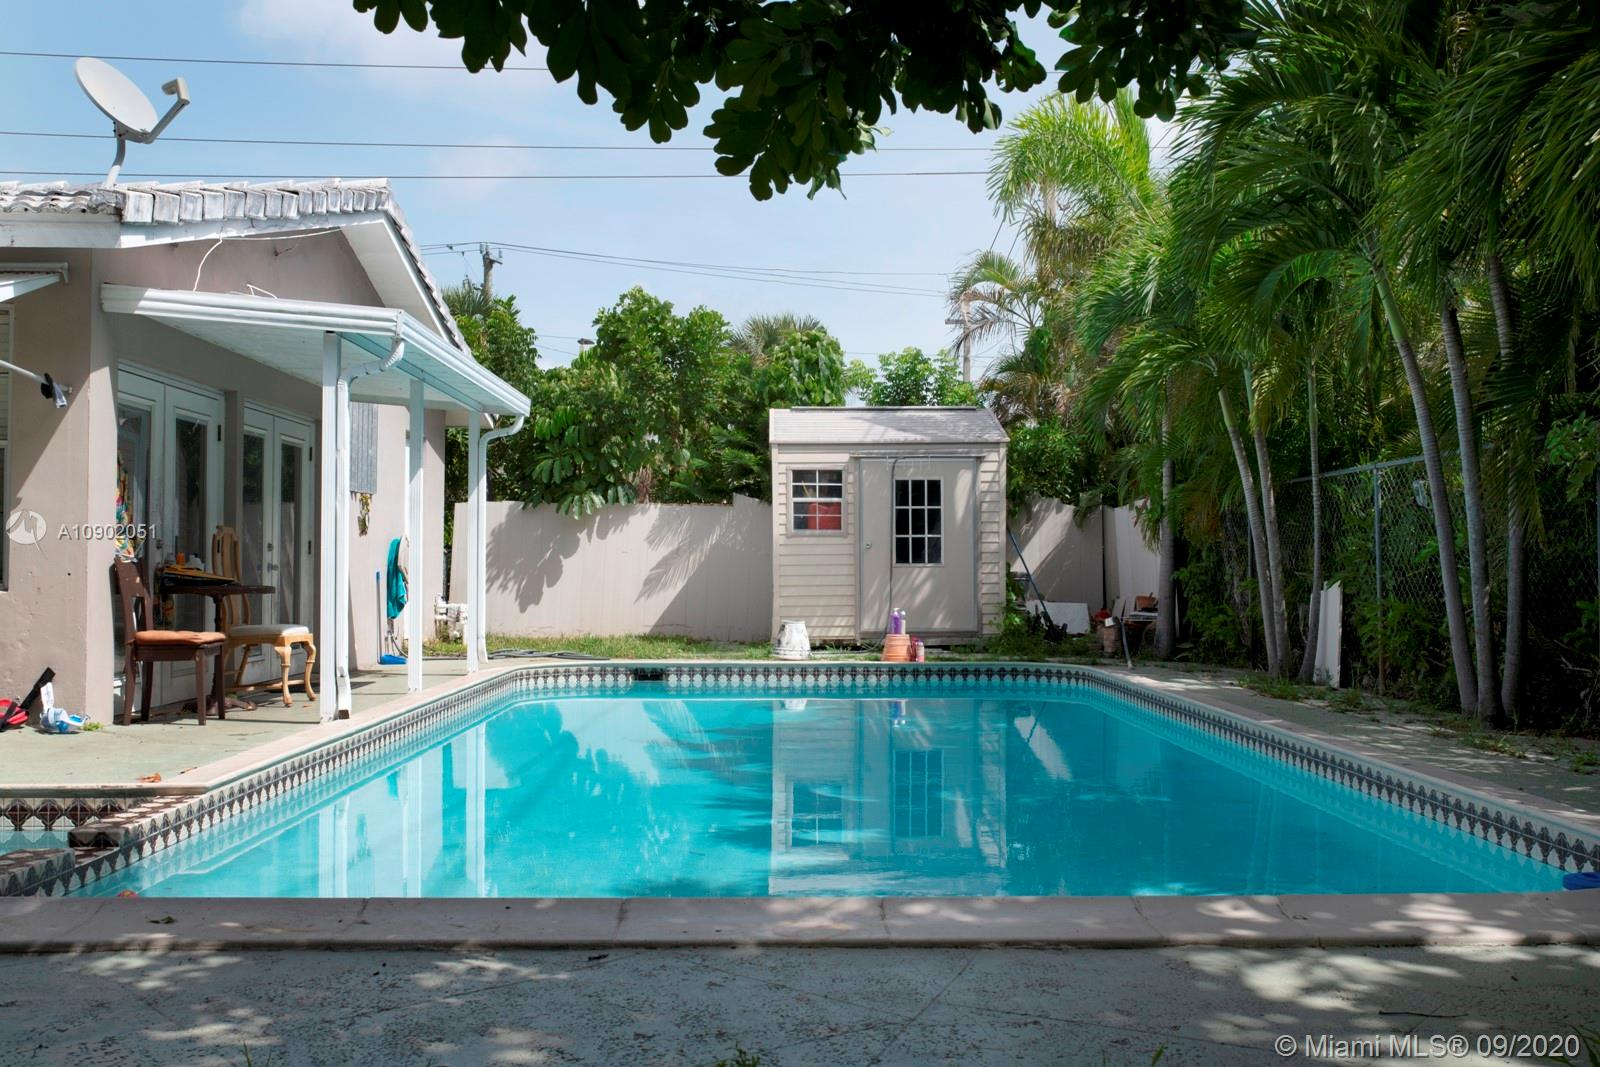 NICE FAMILY HOME 3BD 2BA . NOW THIS IS 2BD 1BA AND 1BD / 1BA W/ SEPARATE ENTRANCE (6 last photos). LARGE CORNER LOT 7,739 SQ WITH BELOW GROUND PRIVATE POOL. TENANT IN PLACE. CORAL HEIGHTS HIS ONE OF THE HOTTEST NEIGHBORHOODS IN OAKLAND PARK REAL ESTATE. NEAR THE BEACHES AND STEPS TO TRENDY NEW SHOPPES / URBAN ARTS DISTRICT/ GROCERIES/ DINING & ENTERTAINMENT. SHOWING ONLY ON SATURDAY  AT 12:00 ONLY BY APOINTMENT BY SHOWING ASSIST .